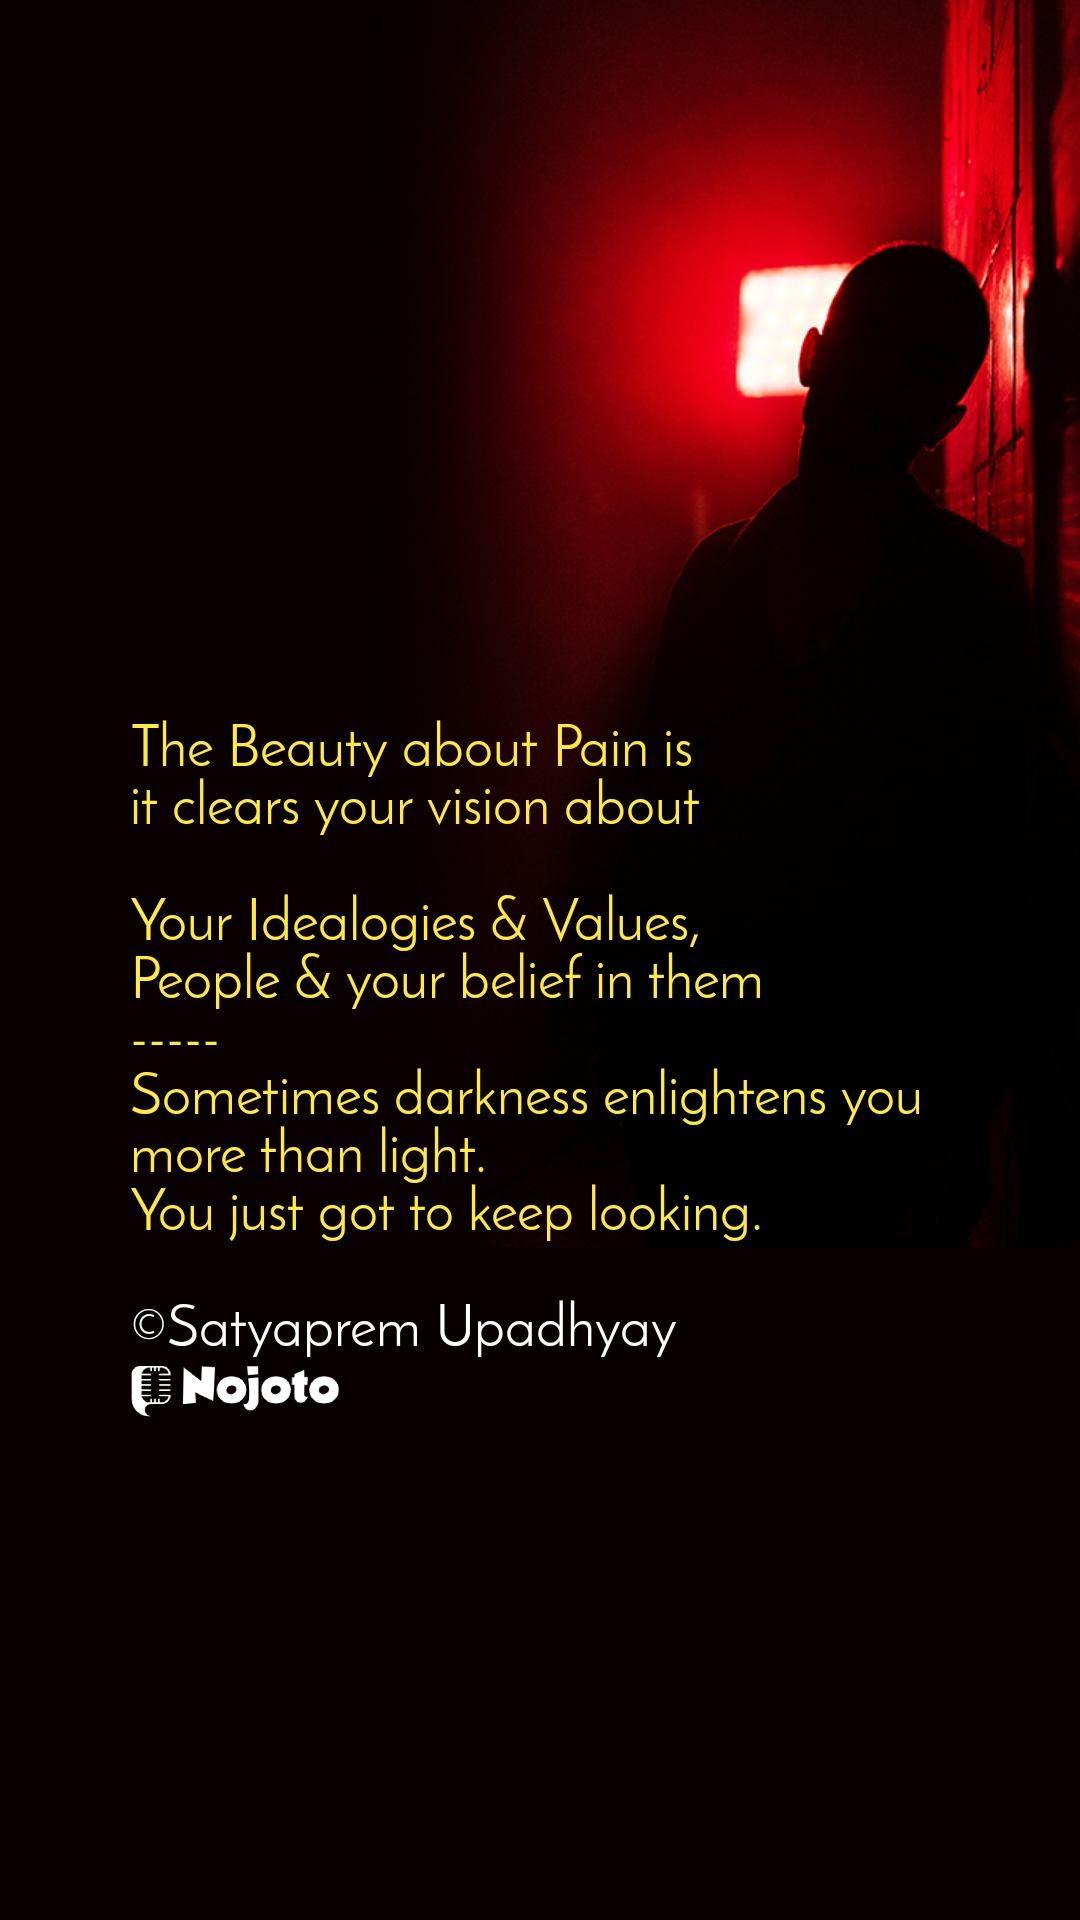 The Beauty about Pain is it clears your vision about  Your Idealogies & Values, People & your belief in them ----- Sometimes darkness enlightens you more than light.  You just got to keep looking.  ©Satyaprem Upadhyay